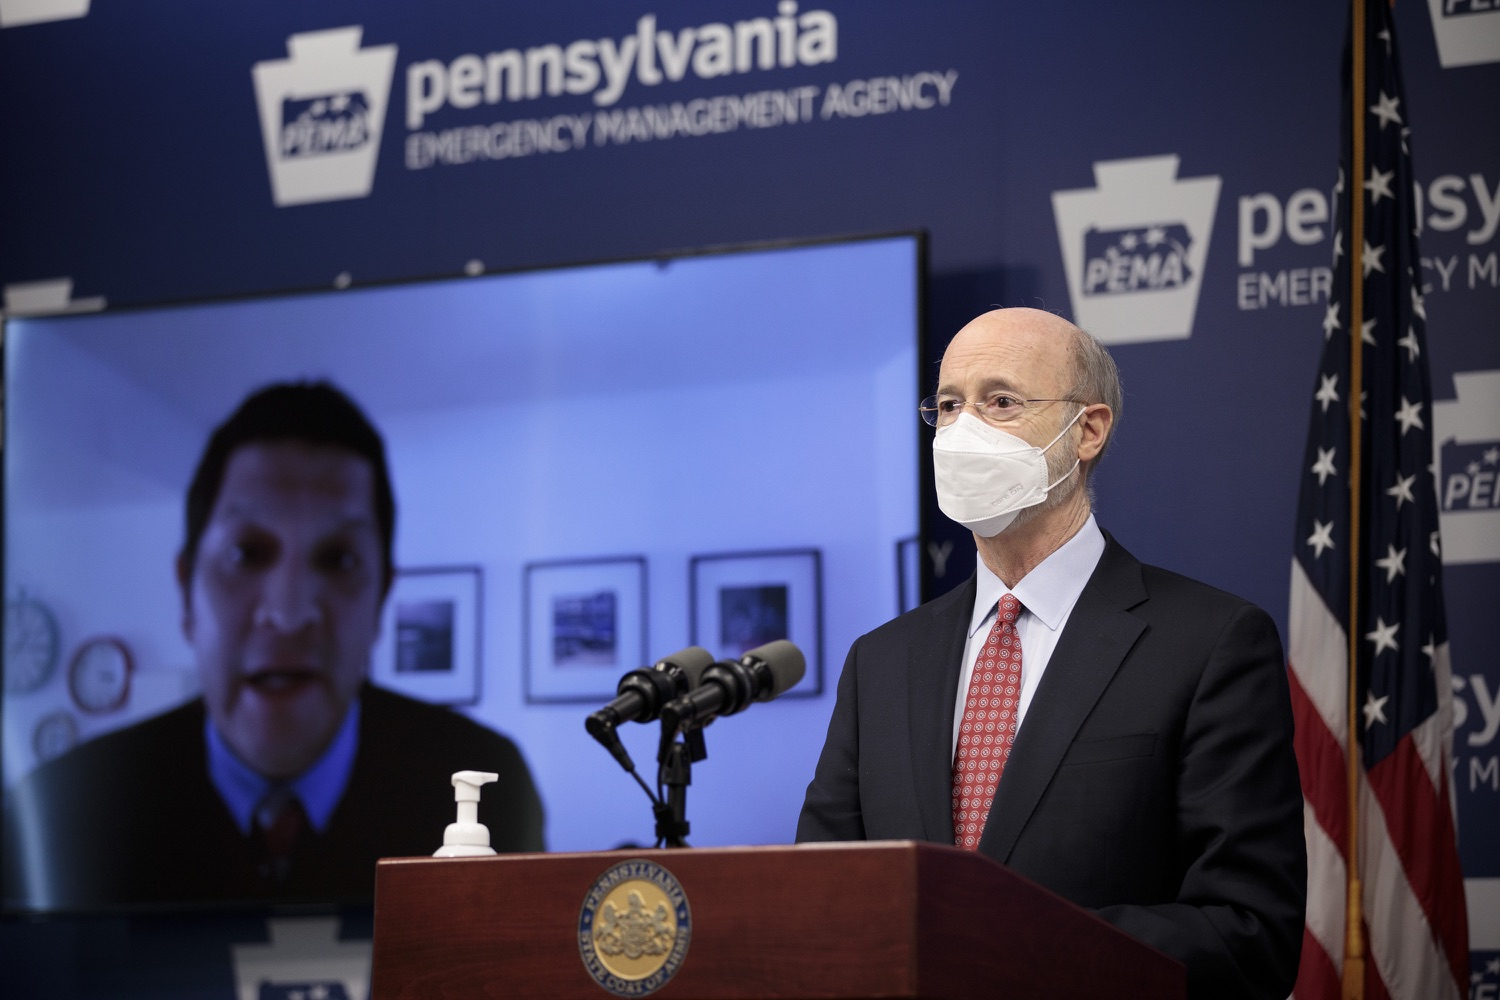 "<a href=""https://filesource.wostreaming.net/commonwealthofpa/photo/18535_gov_nellie_bly_dz_13.jpg"" target=""_blank"">⇣ Download Photo<br></a>Pennsylvania Governor Tom Wolf watches as Secretary Noe Ortega, PDE speaks remotely at the press conference.     Governor Tom Wolf wants to bet on 44,000 students to help them earn a college degree while graduating with less debt and building successful lives in Pennsylvania. Today, the governor held a press conference to discuss how his historic Nellie Bly Scholarship Program would provide need-based financial assistance for students at 14 universities in the states system. Harrisburg, PA  February 17, 2021"